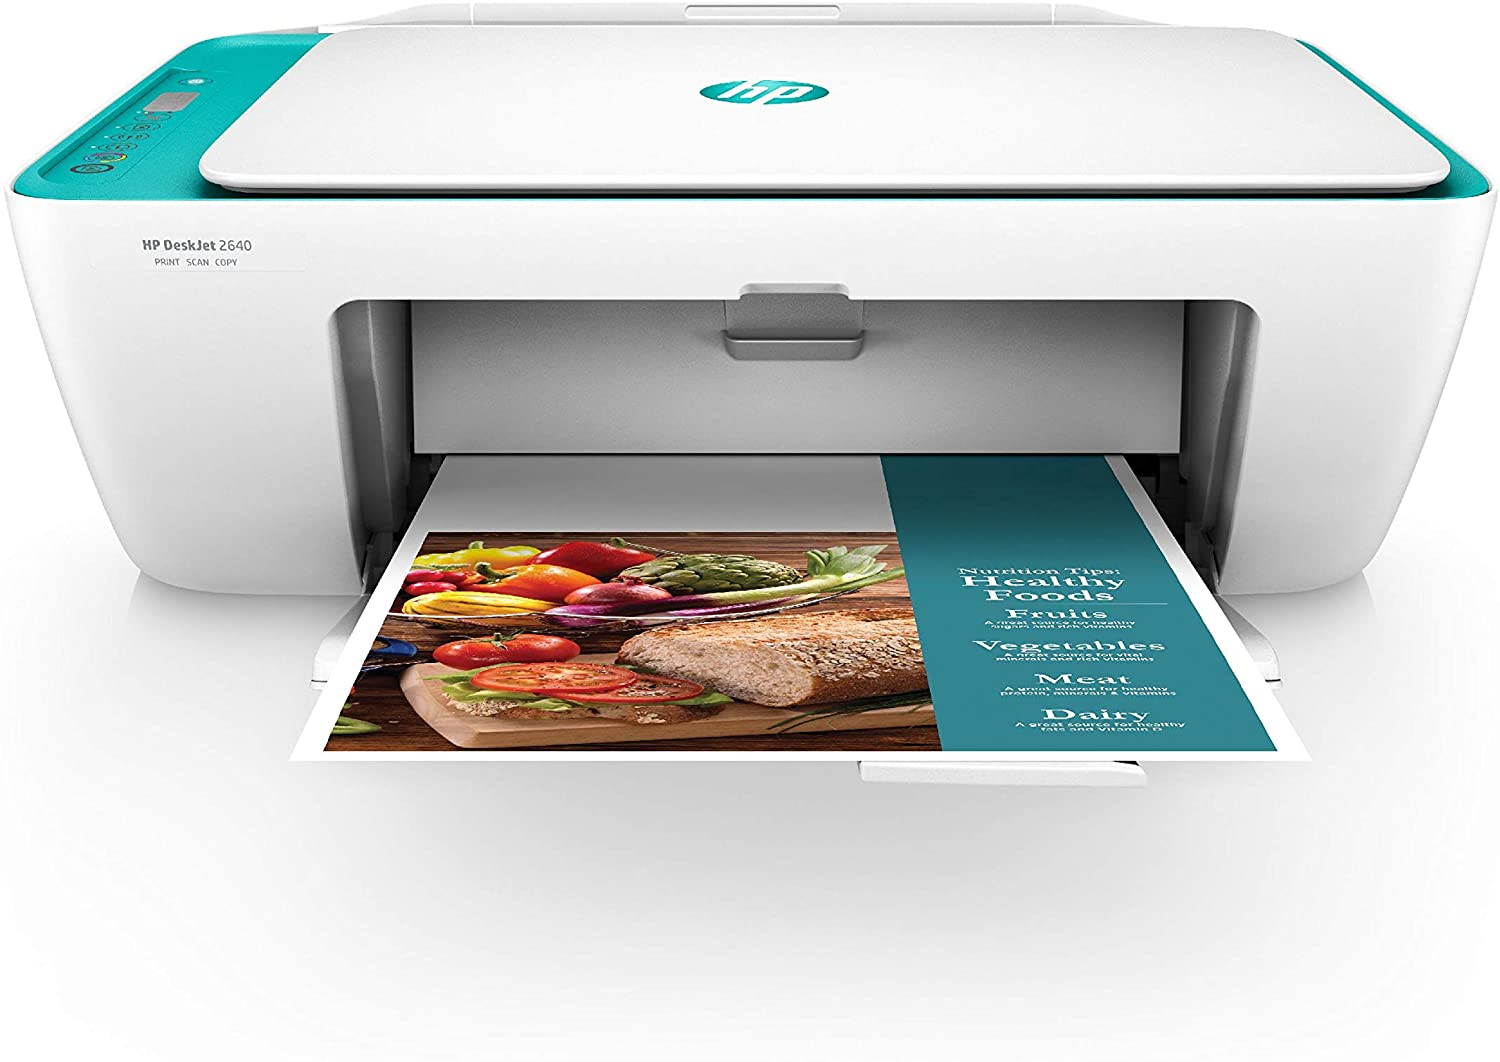 Which is the best HP printer for home use? Is Hp Deskjet 2640 worth it in 2021?